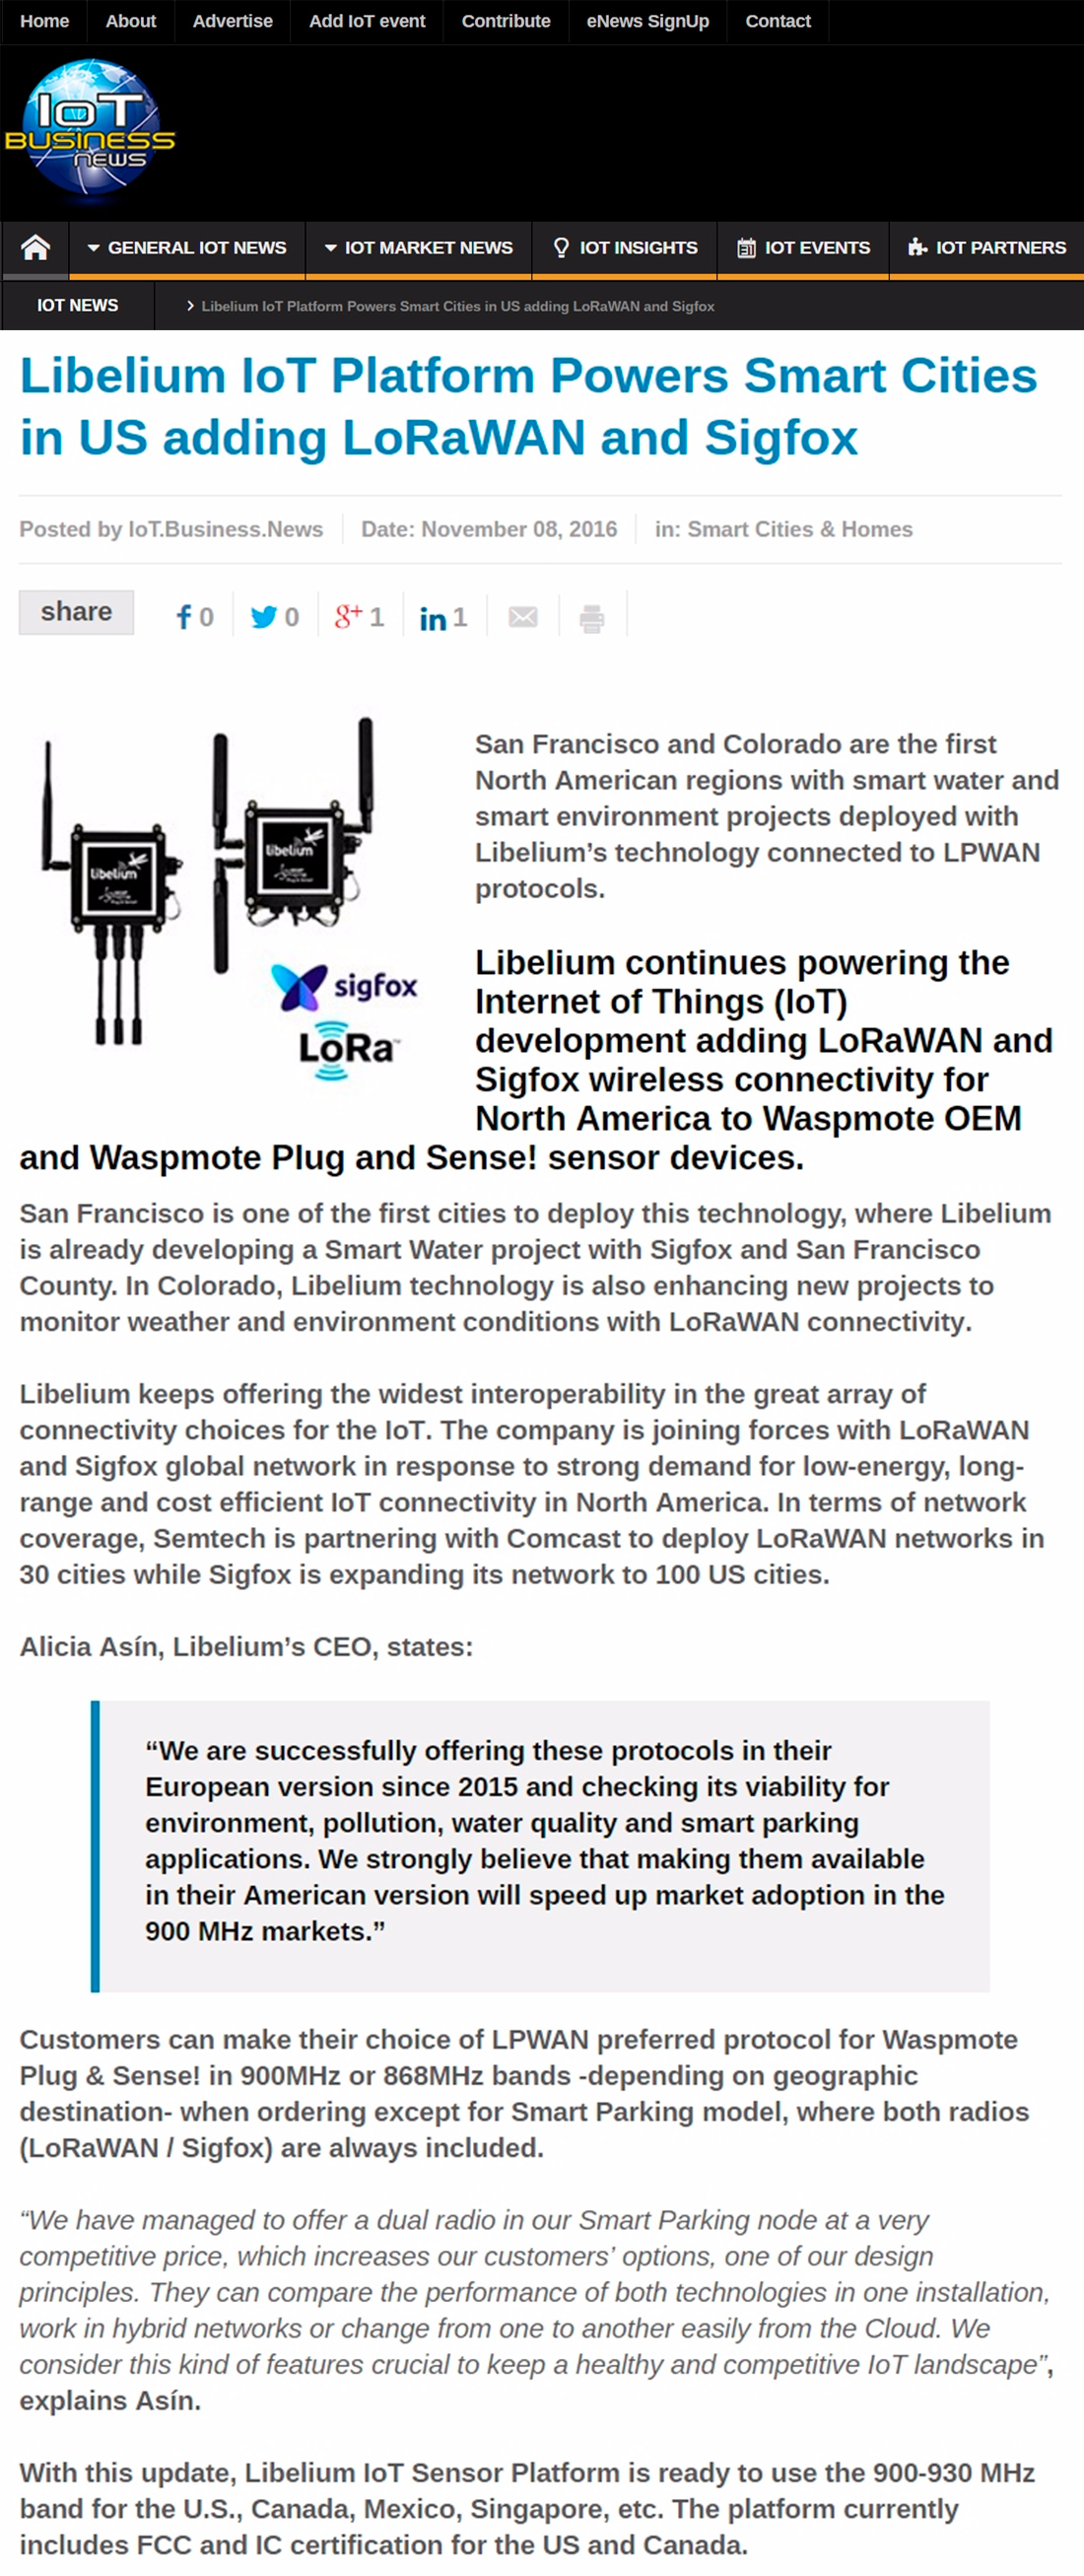 oT Business News – Libelium IoT Platform Powers Smart Cities in US adding LoRaWAN and Sigfox